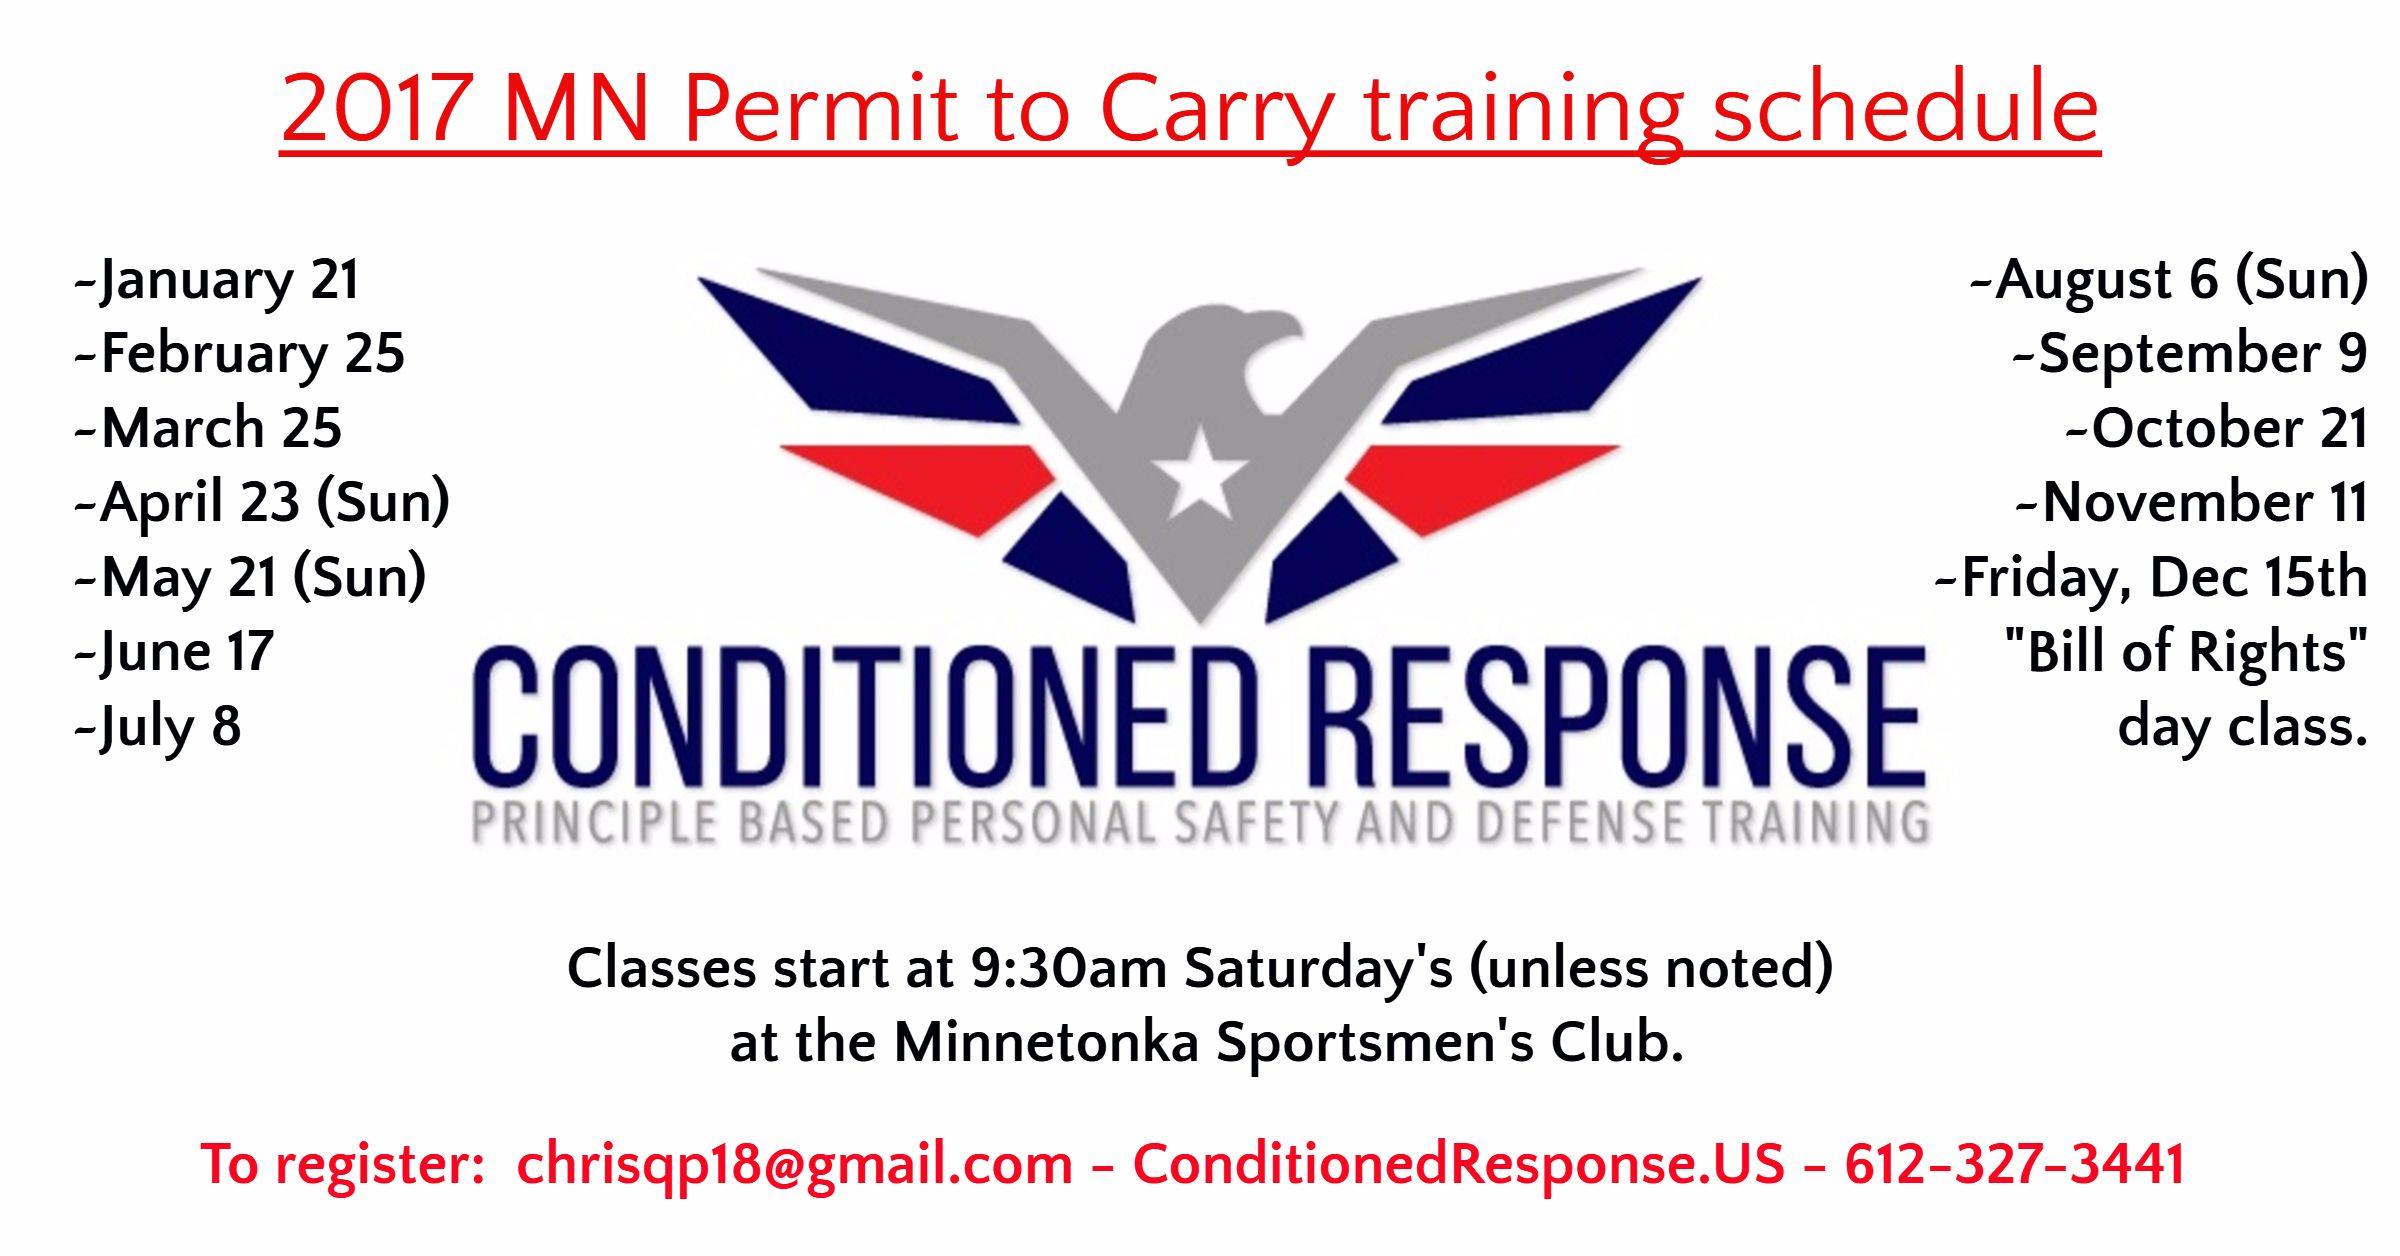 2017 MN Permit to Carry training schedule / January 21